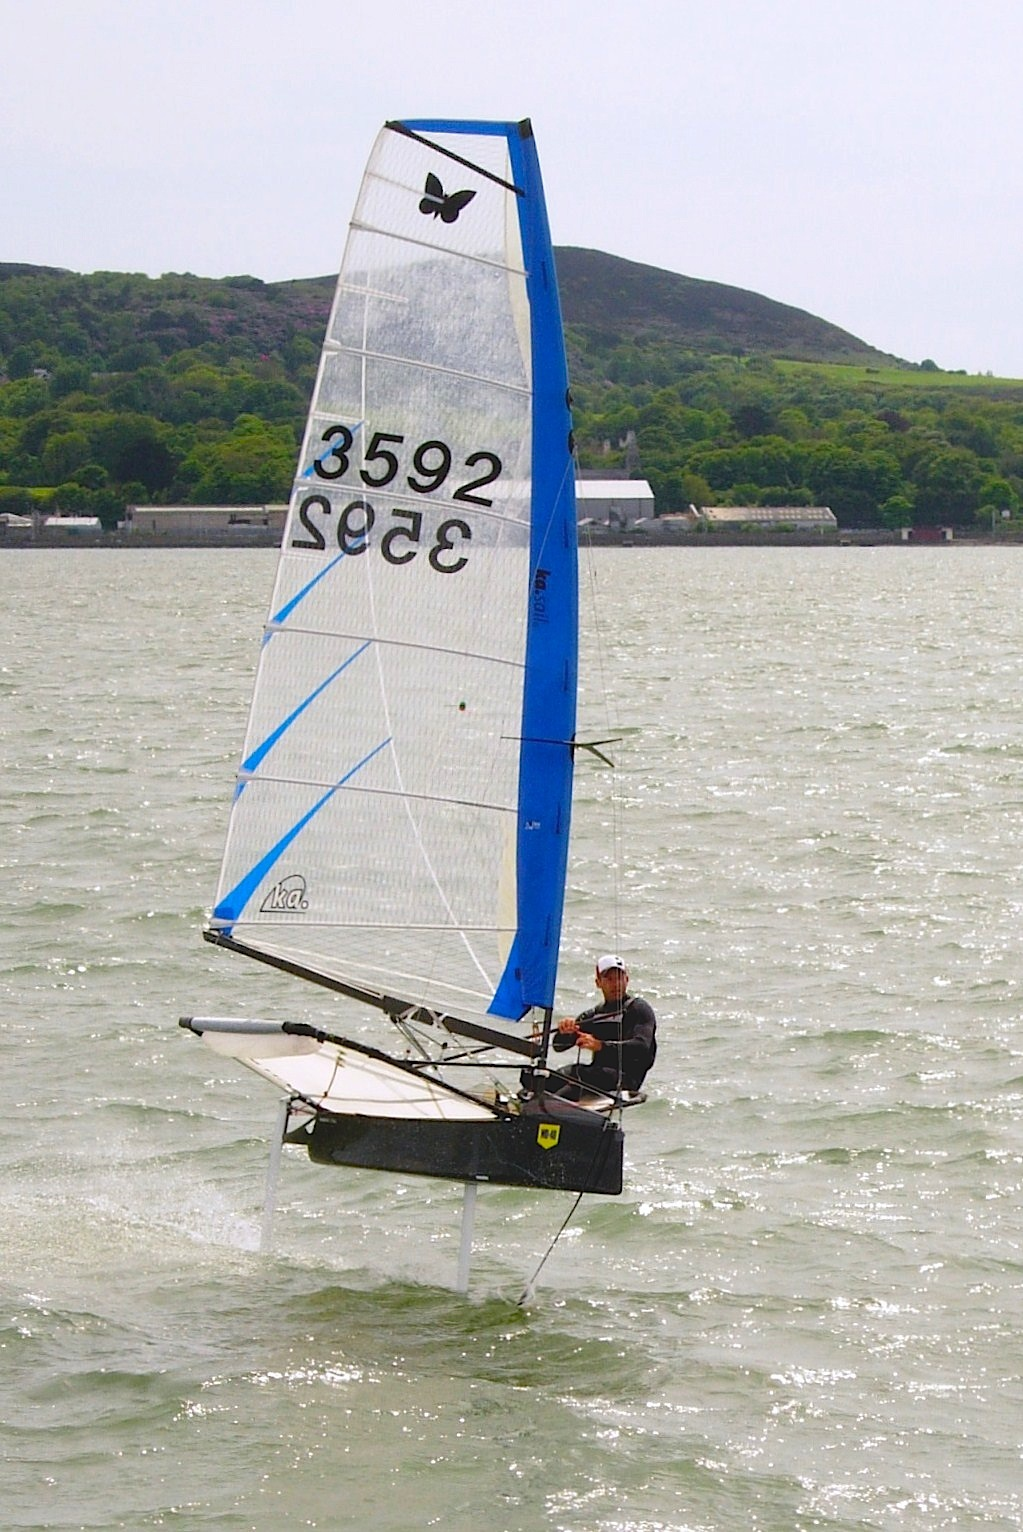 Rory Fitzpatrick shows how to 'foil' in front of Howth Pier